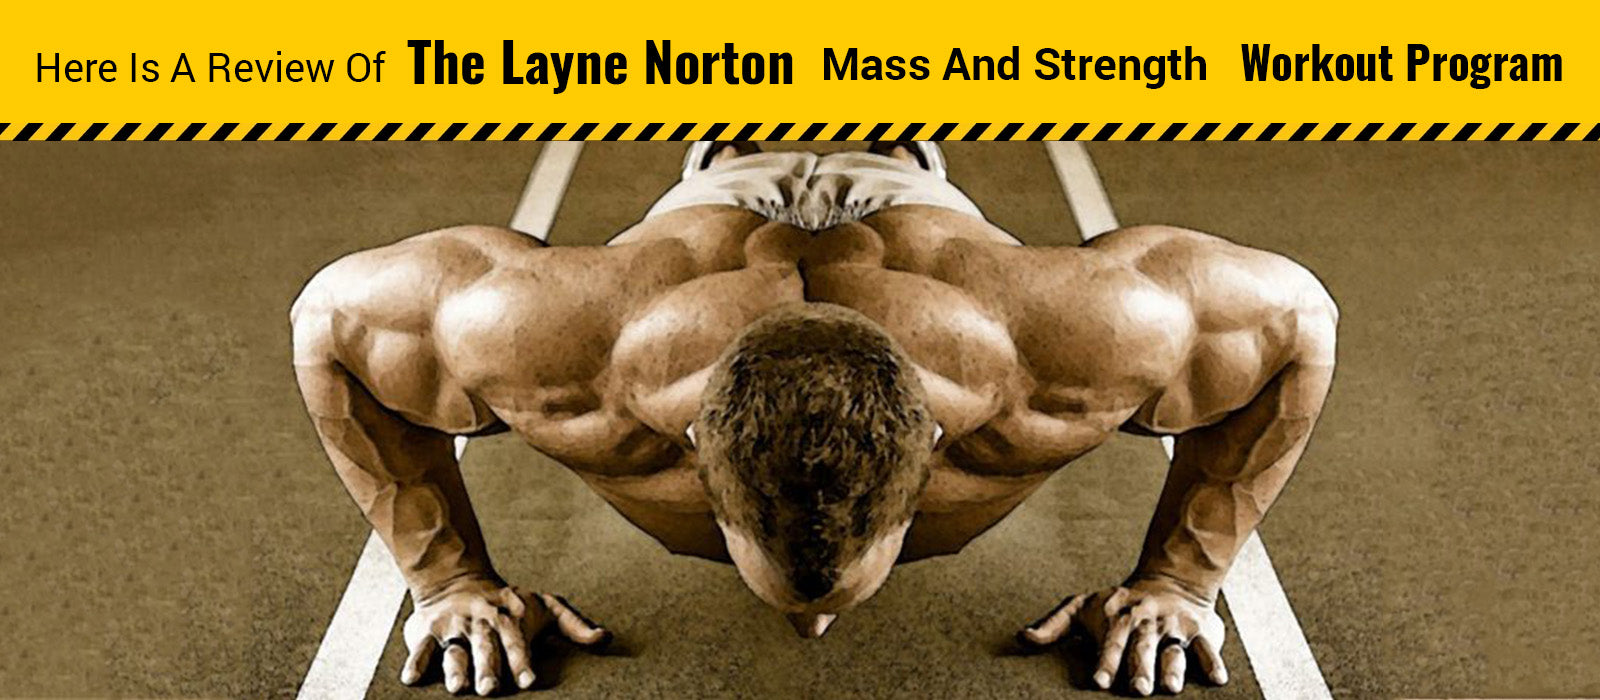 Here Is A Review Of The Layne Norton Mass And Strength Workout Program